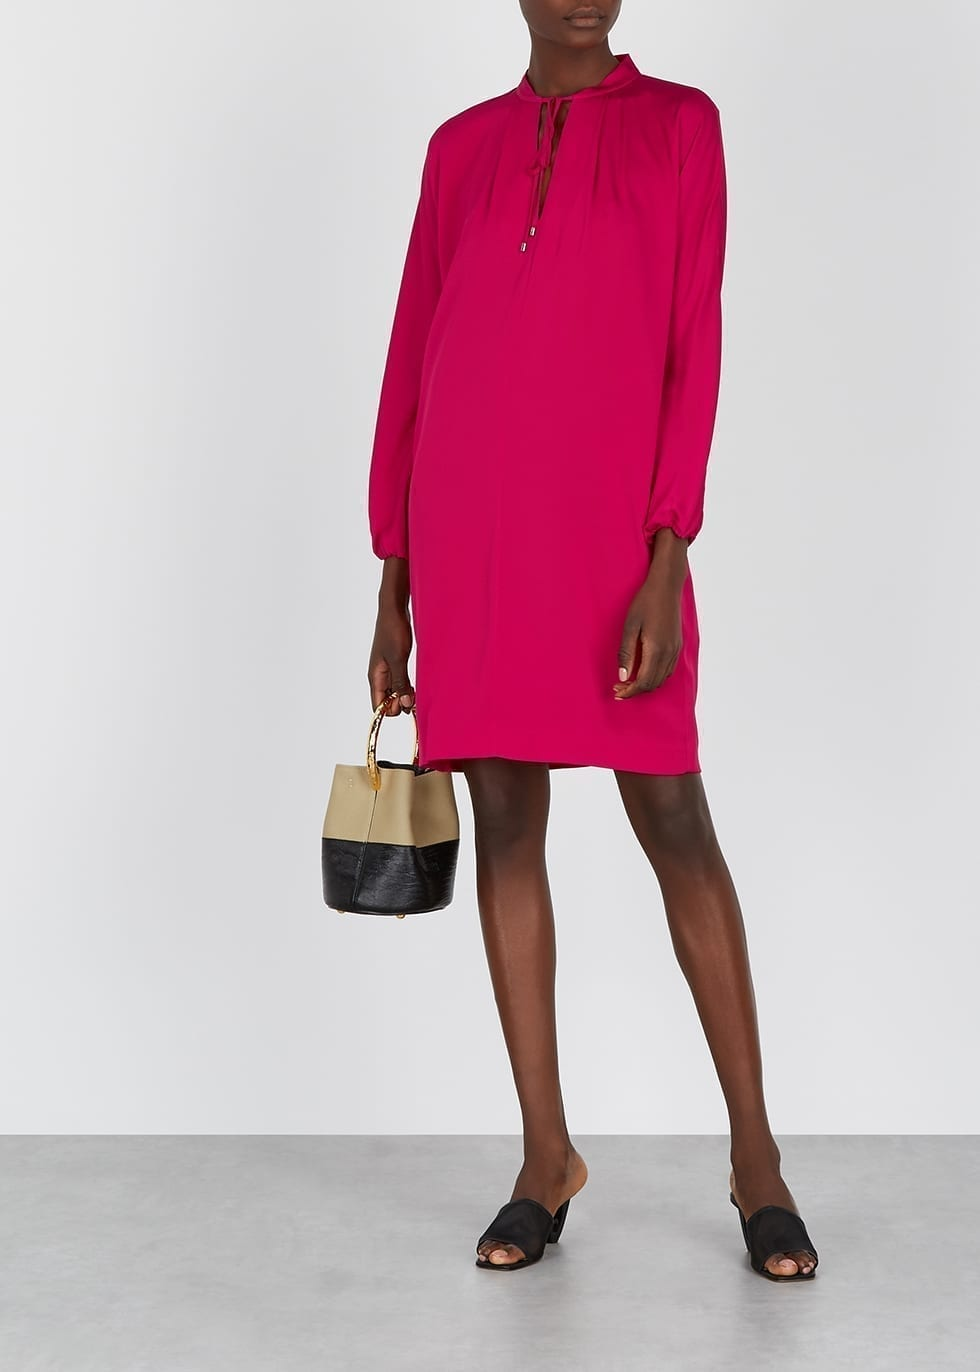 DIANE VON FURSTENBERG Jessica Fuchsia Silk-blend Tunic Dress